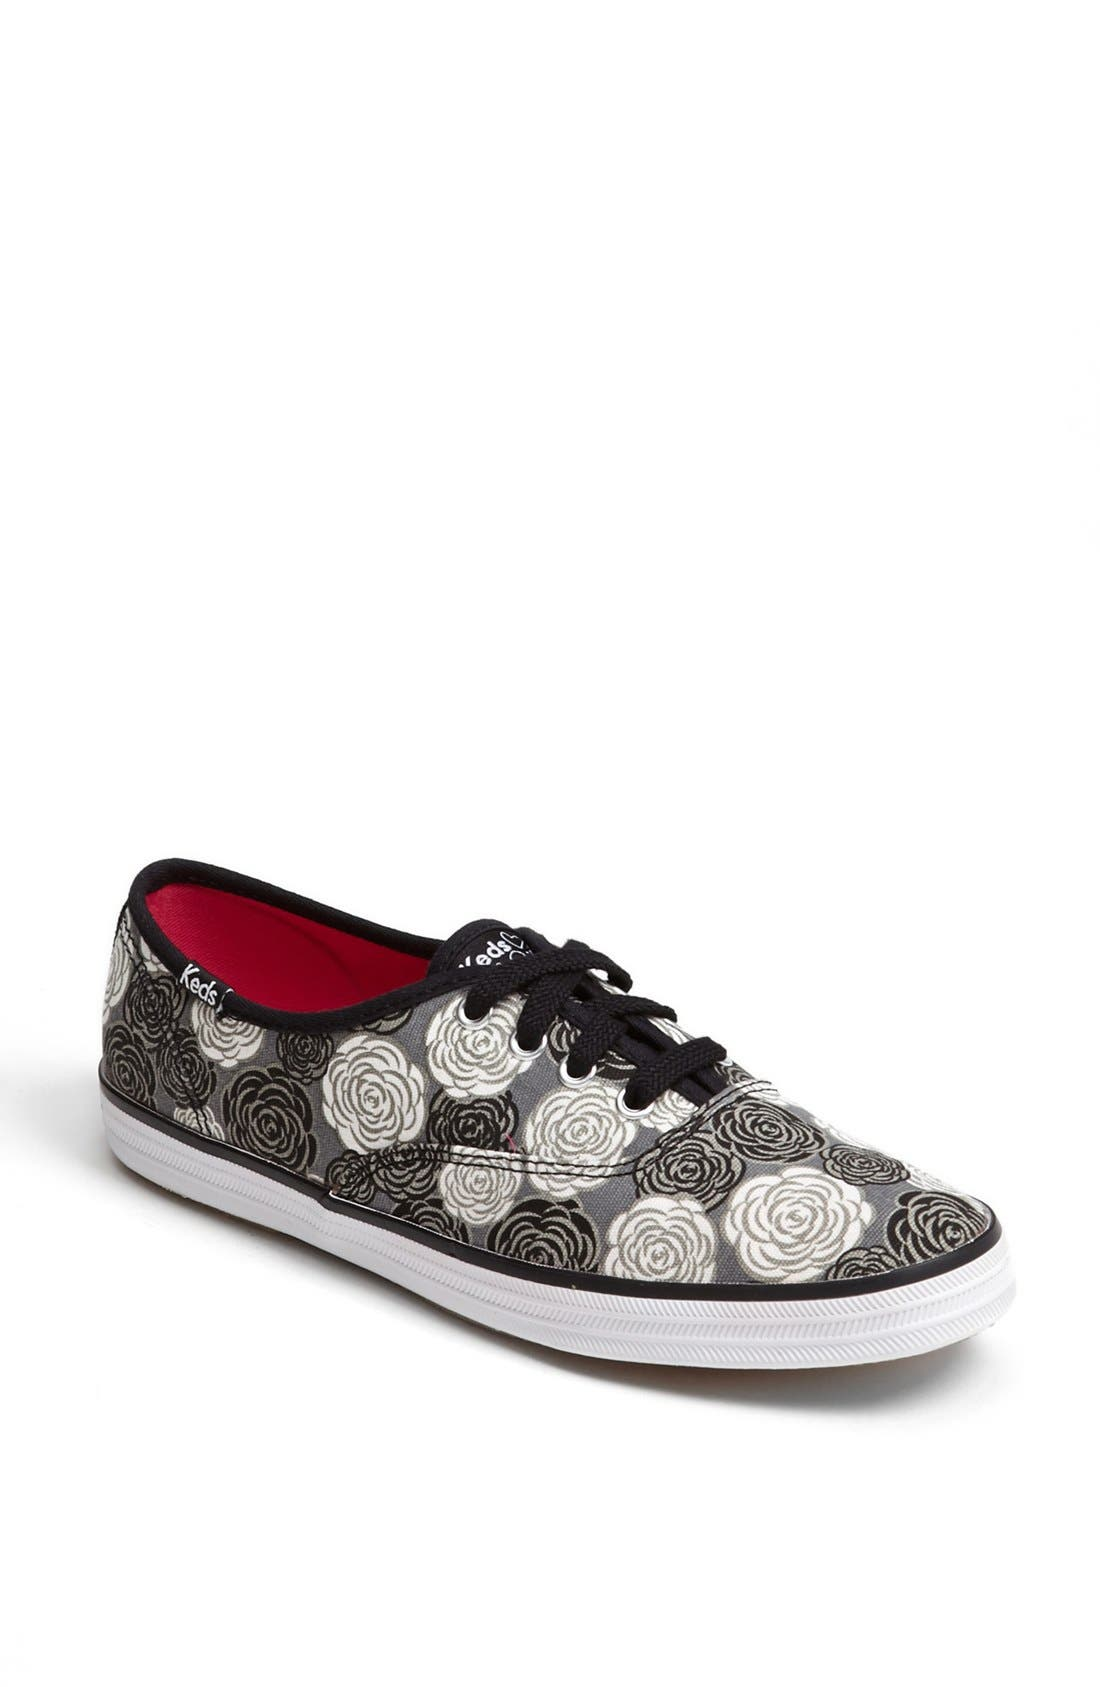 Alternate Image 1 Selected - Keds® Taylor Swift Sneaker (Nordstrom Exclusive)